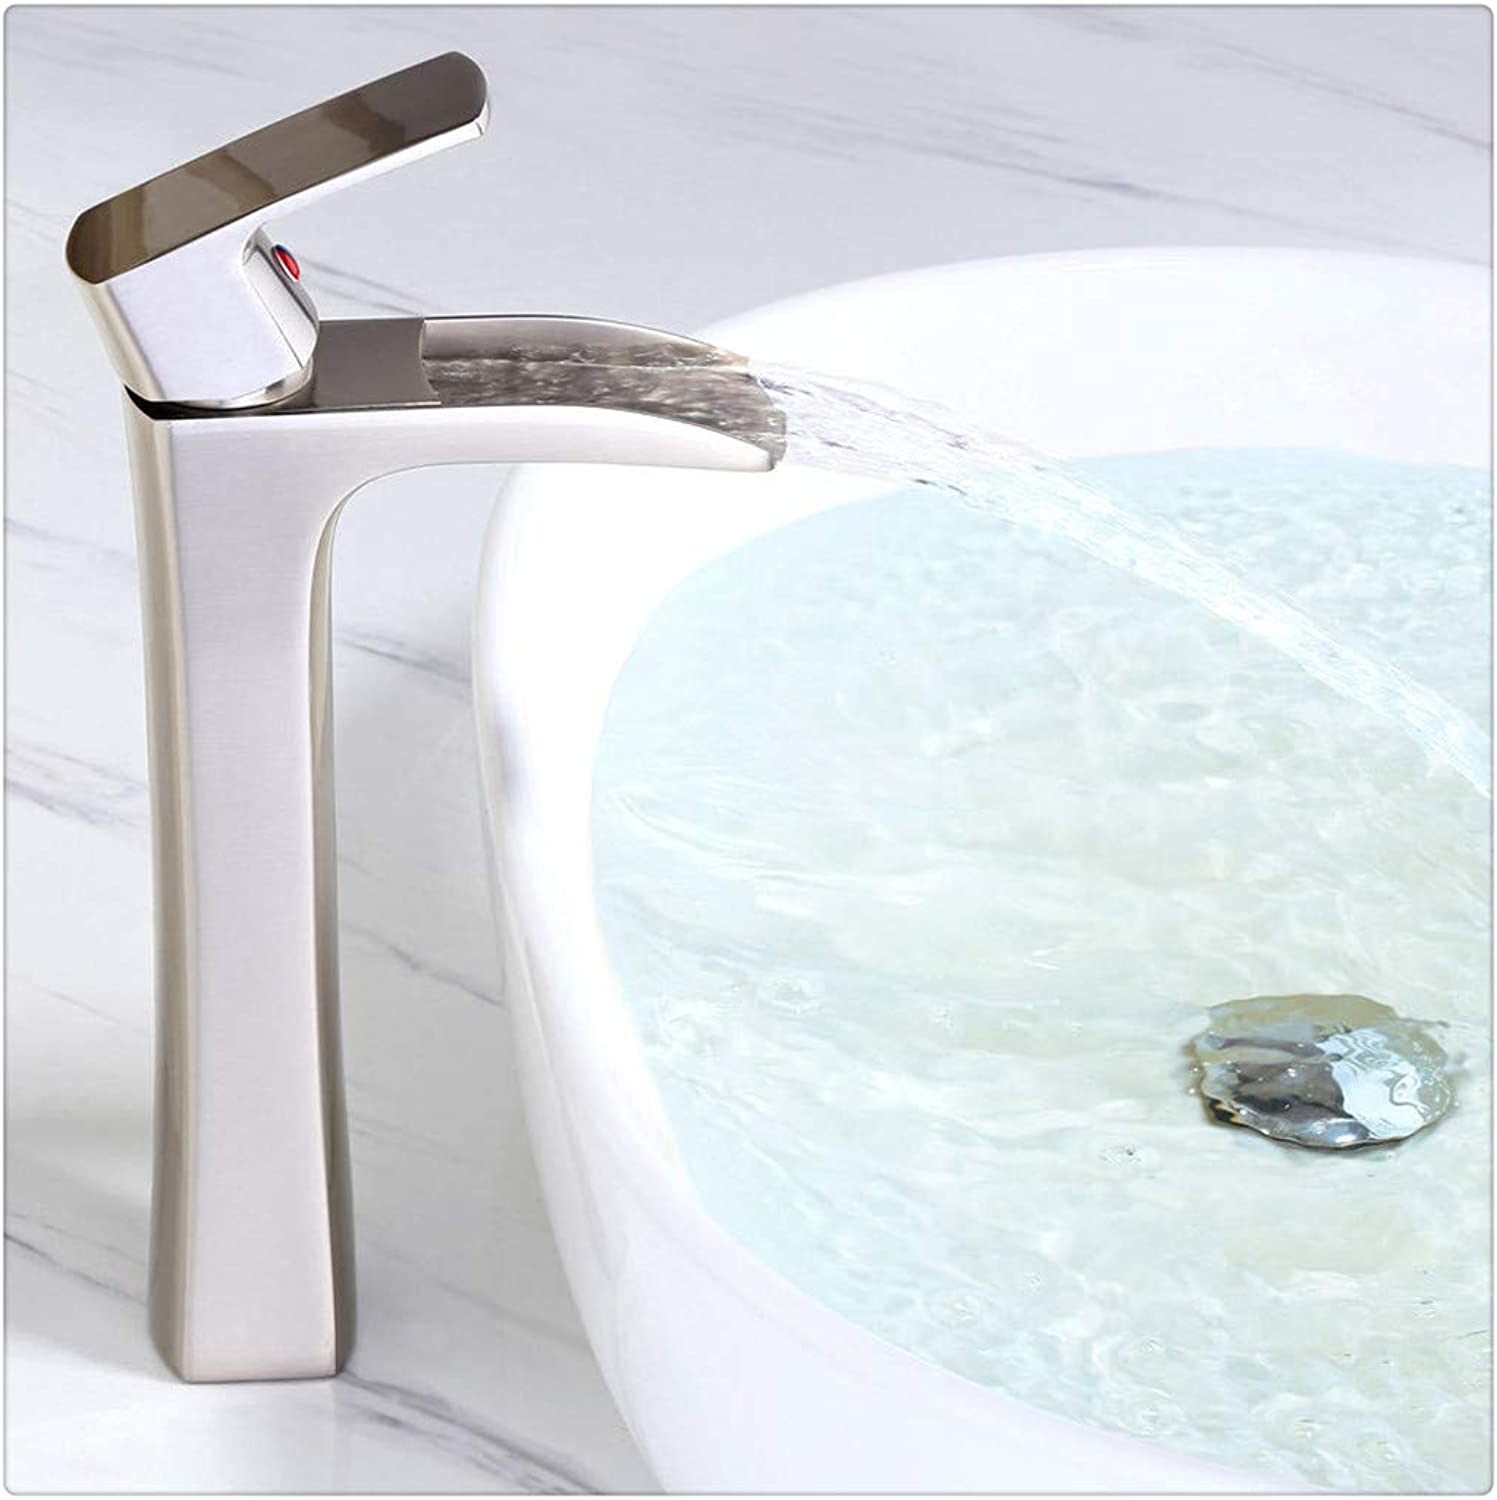 Bathroom Sink Taps Contemporary Waterfall Deck Mounted Basin Faucet Washroom Bathroom Kitchen Mixer Tap,Brushed Nickel